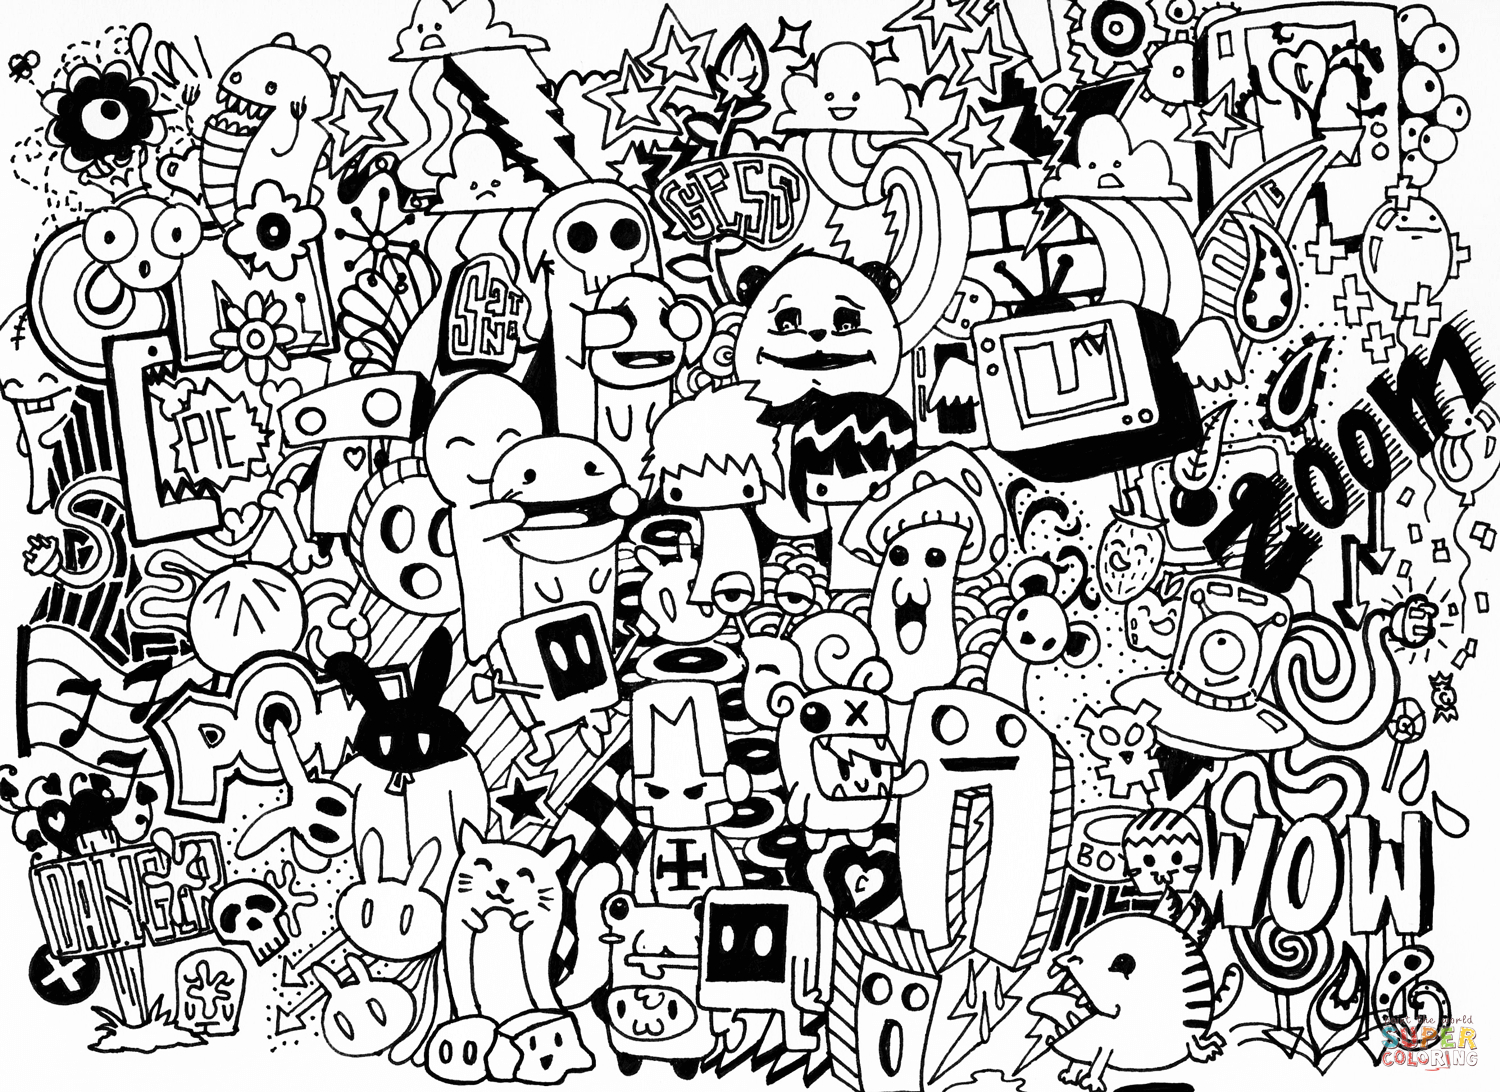 Doodle Collab Coloring Page | Free Printable Coloring Pages - Free Printable Doodle Patterns